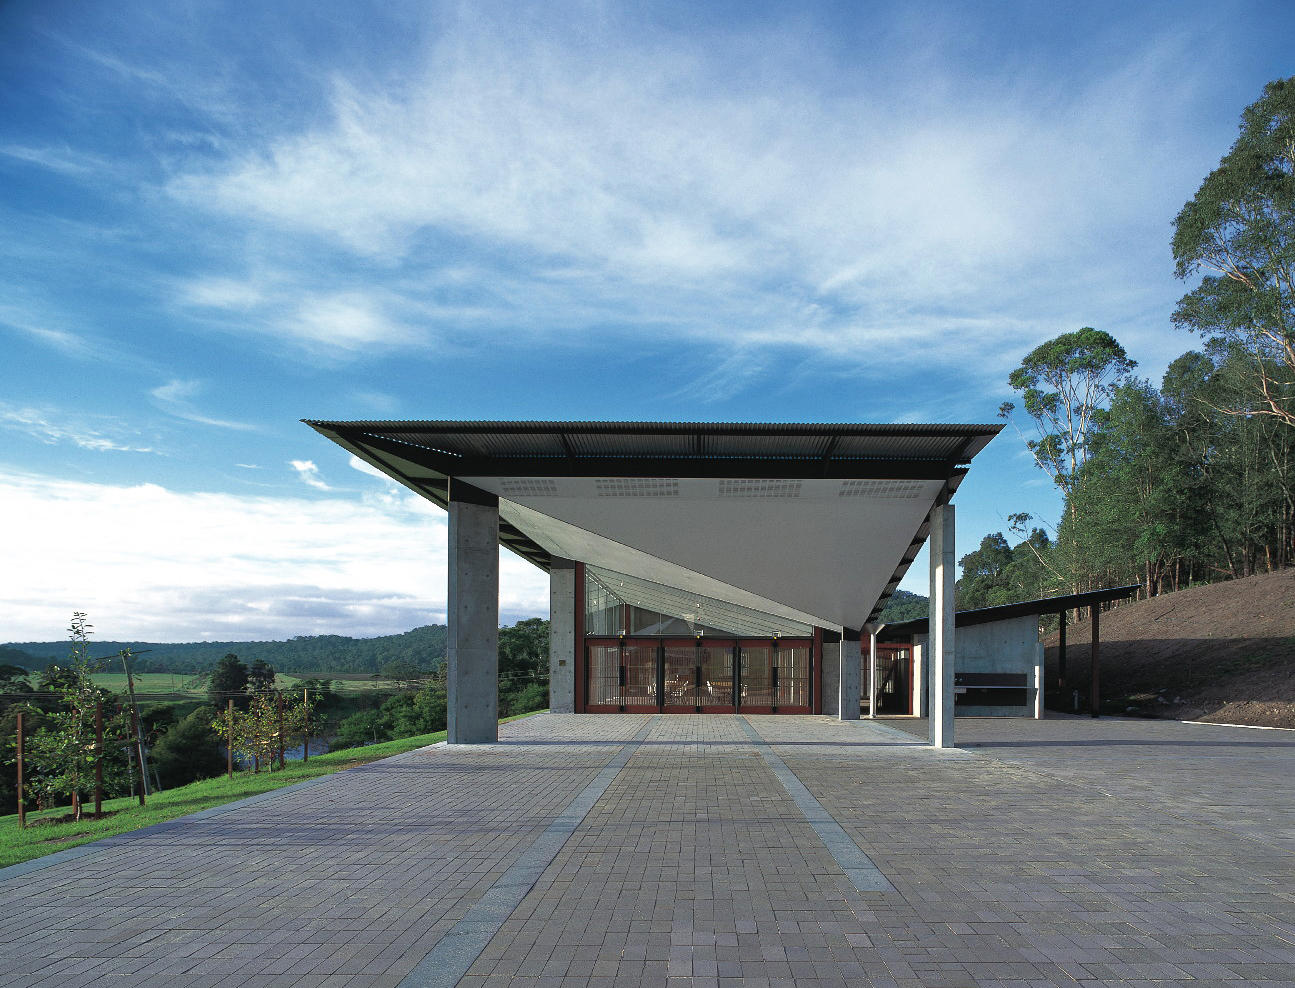 The Arthur and Yvonne Boyd Education Centre Riversdale by Glenn Murcutt| MPavilion 2019| Glenn Murcutt| STIR